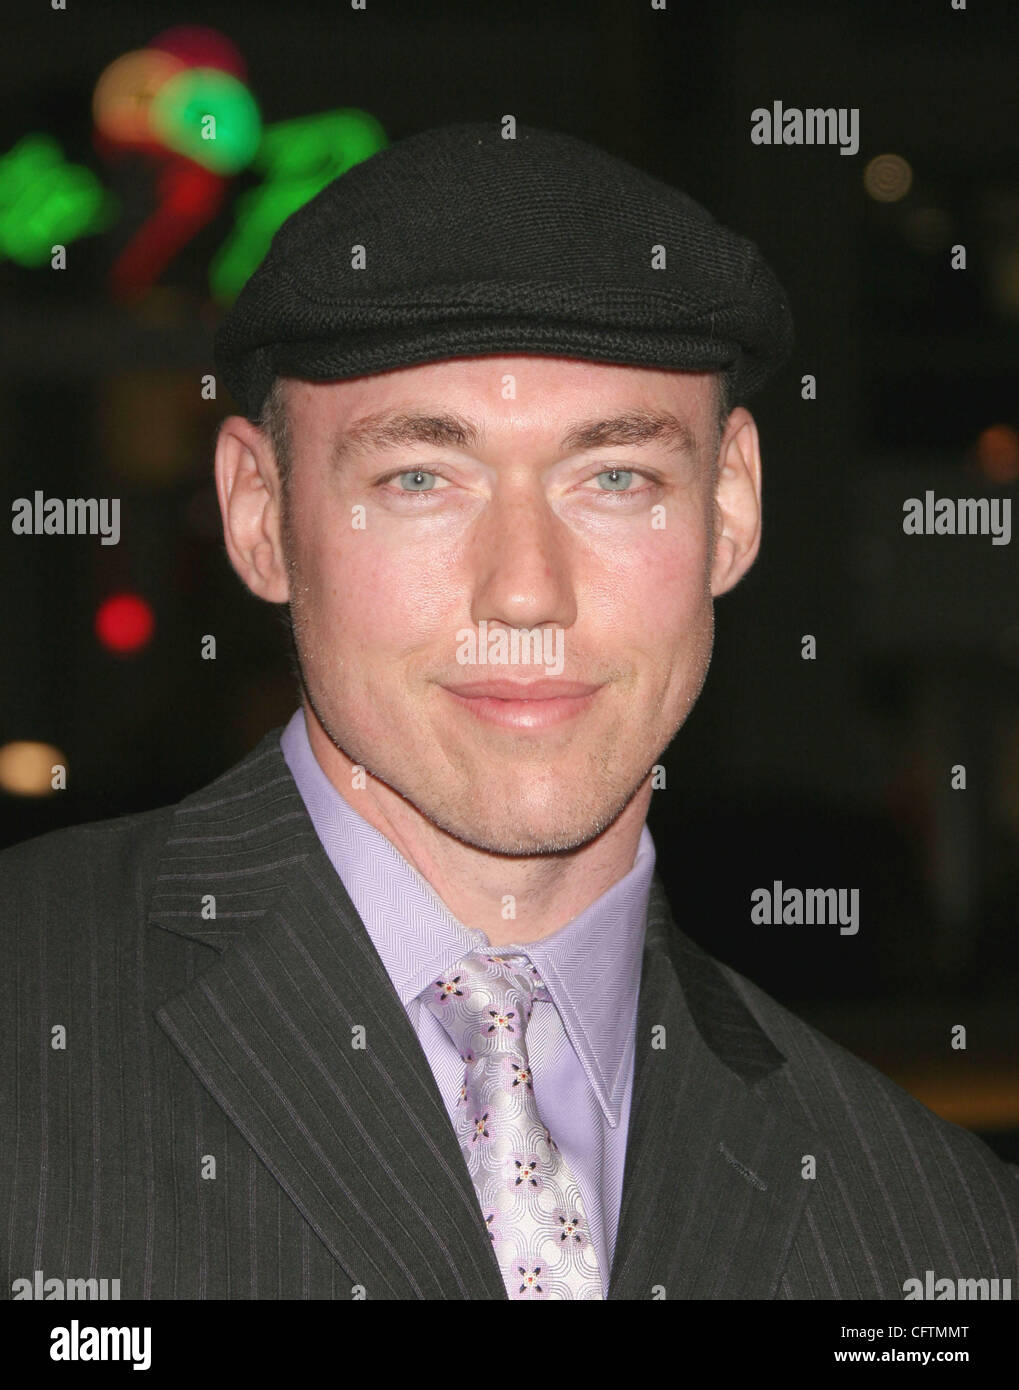 Jan 18, 2007; Hollywood, California, USA;  Actor KEVIN DURAND    at the 'Smokin Aces' World Premeire held - Stock Image